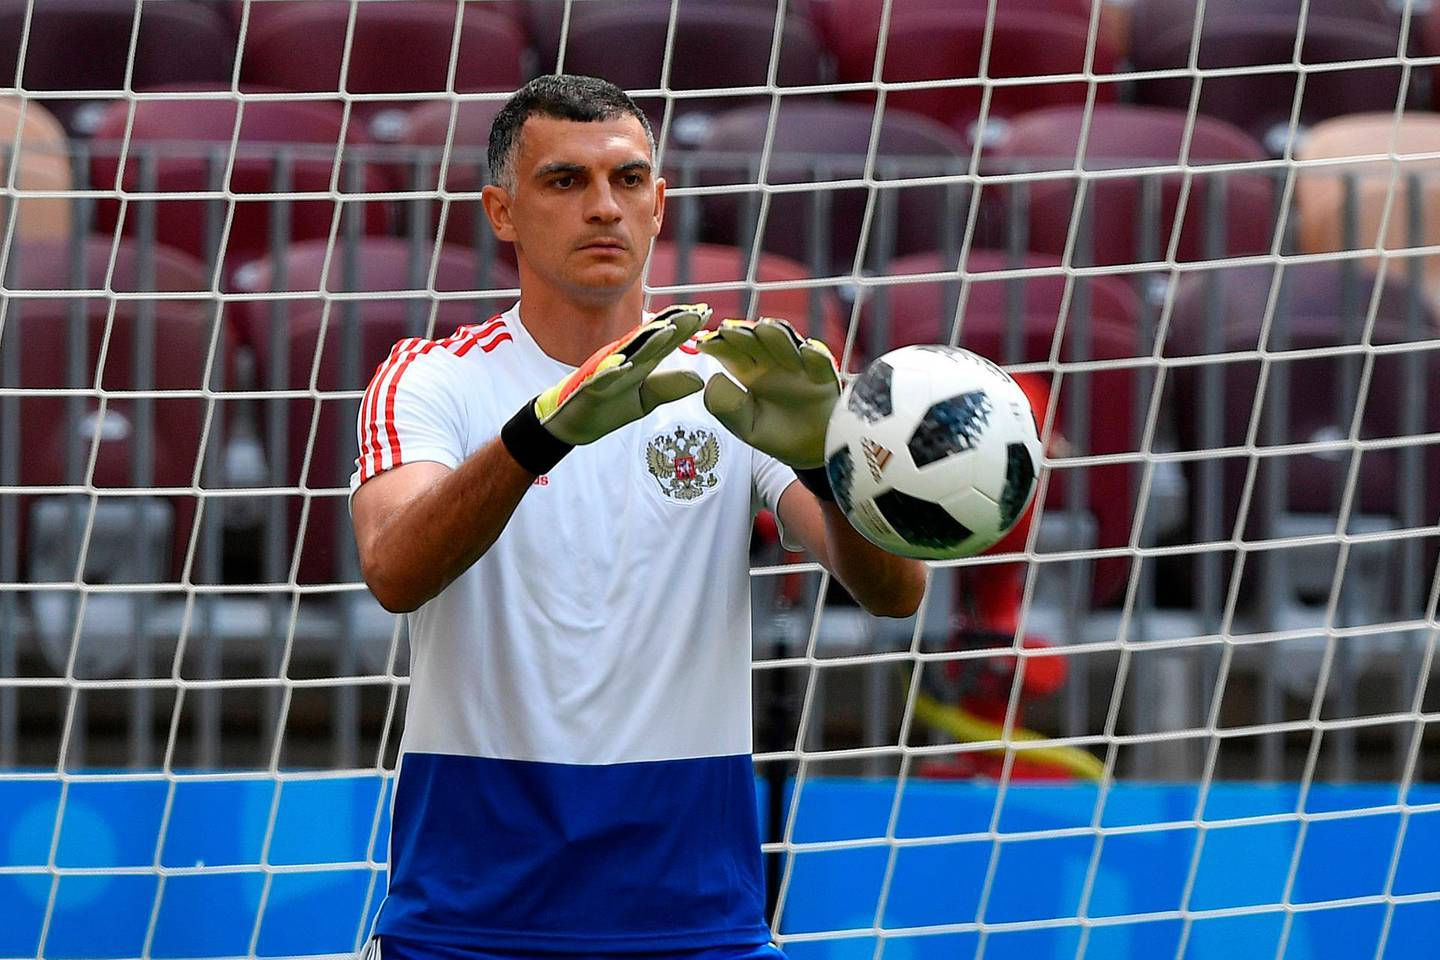 Russia's goalkeeper Vladimir Gabulov takes part in a training session at the Luzhniki Stadium in Moscow on June 13, 2018 ahead of the Russia 2018 World Cup opening football match between Russia and Saudi Arabia. / AFP / Alexander NEMENOV